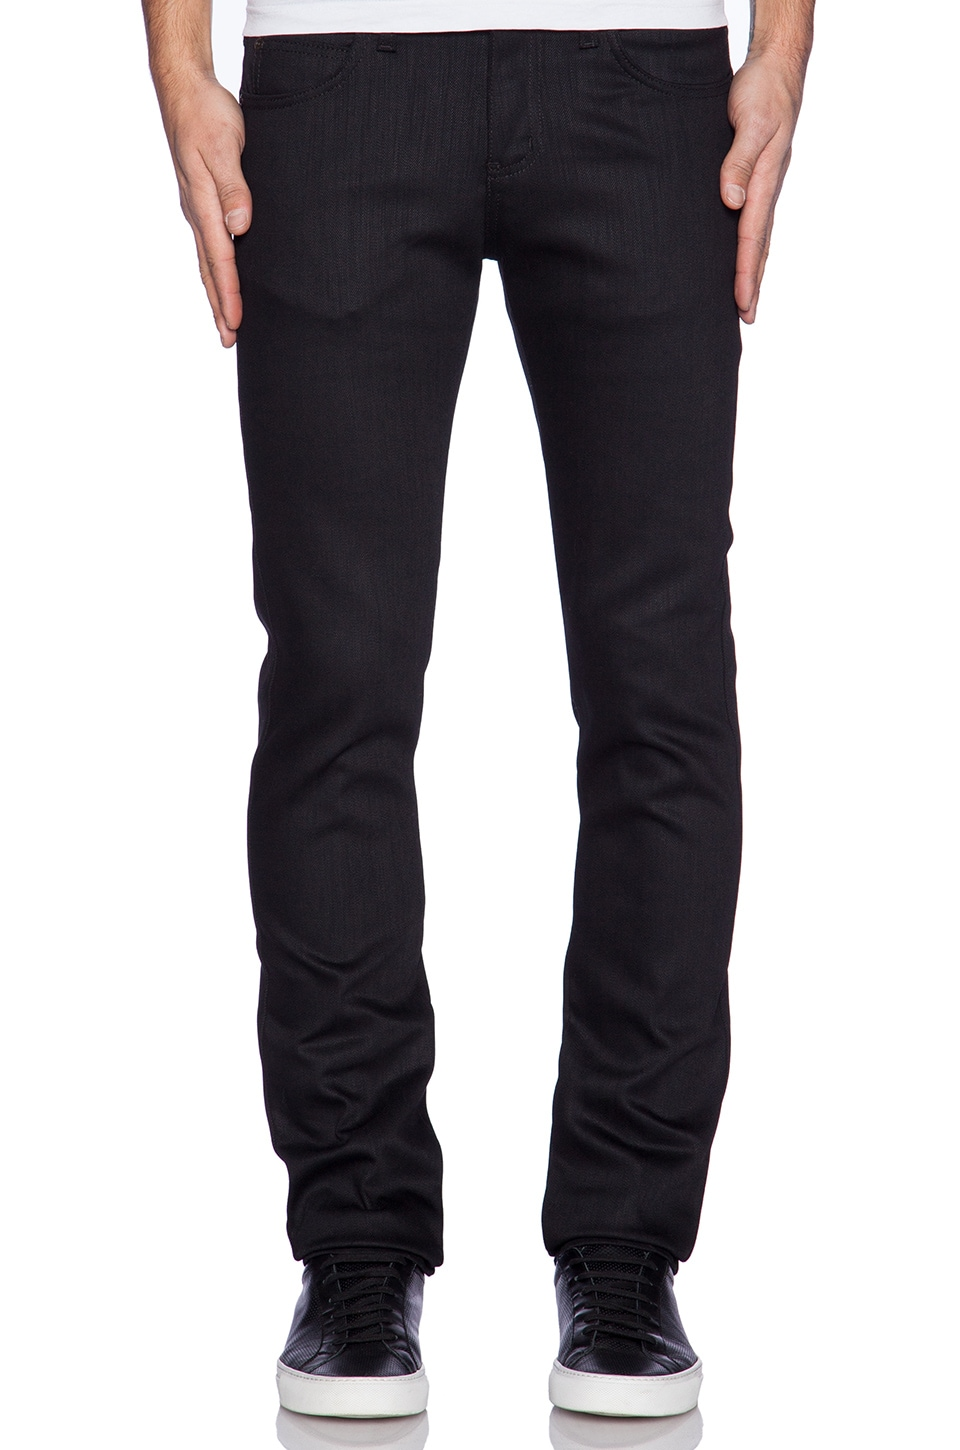 Super Skinny Guy 12 oz by Naked & Famous Denim